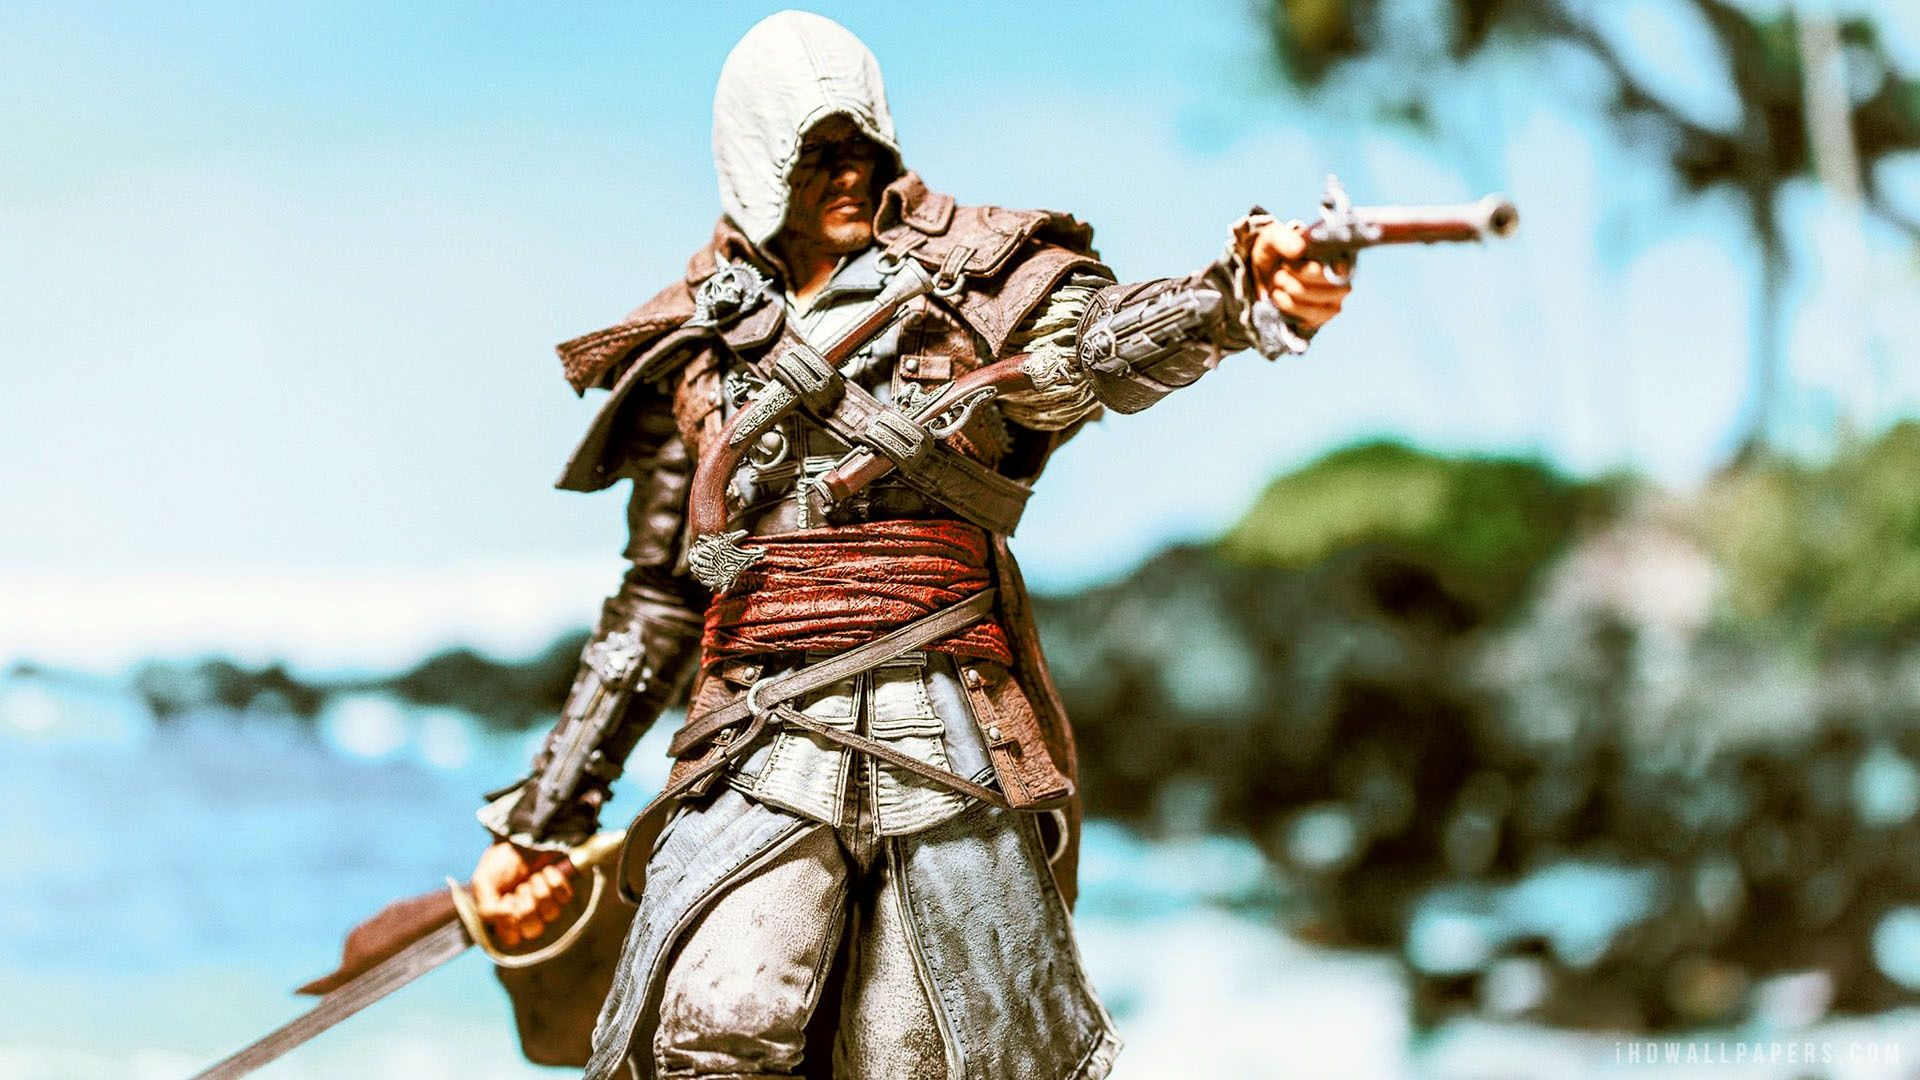 Assassin S Creed Black Flag Wallpaper The Latest Assassins Creed